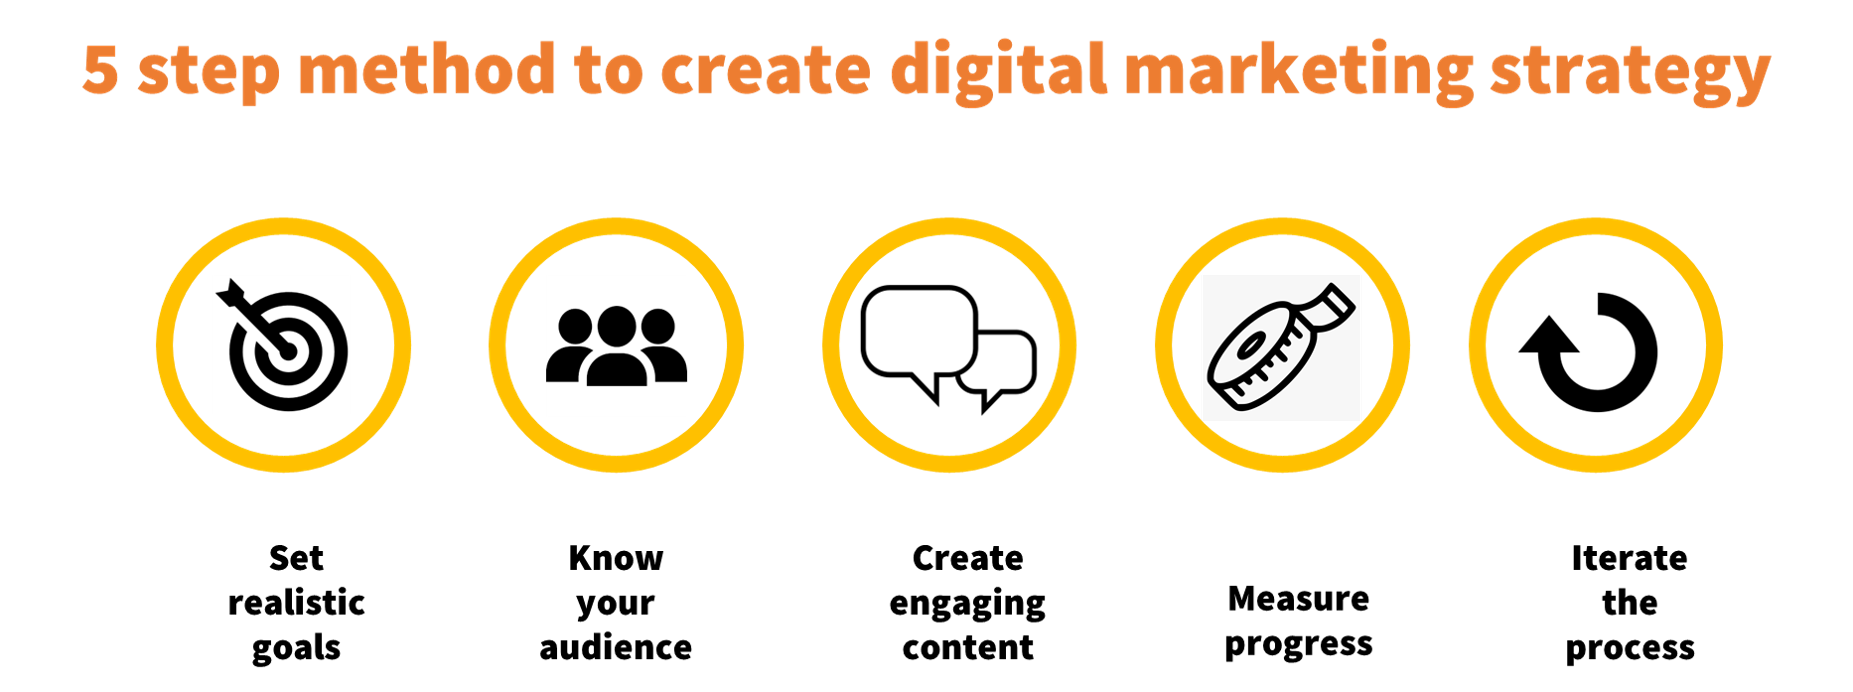 digital marketing strategy framework for online sellers